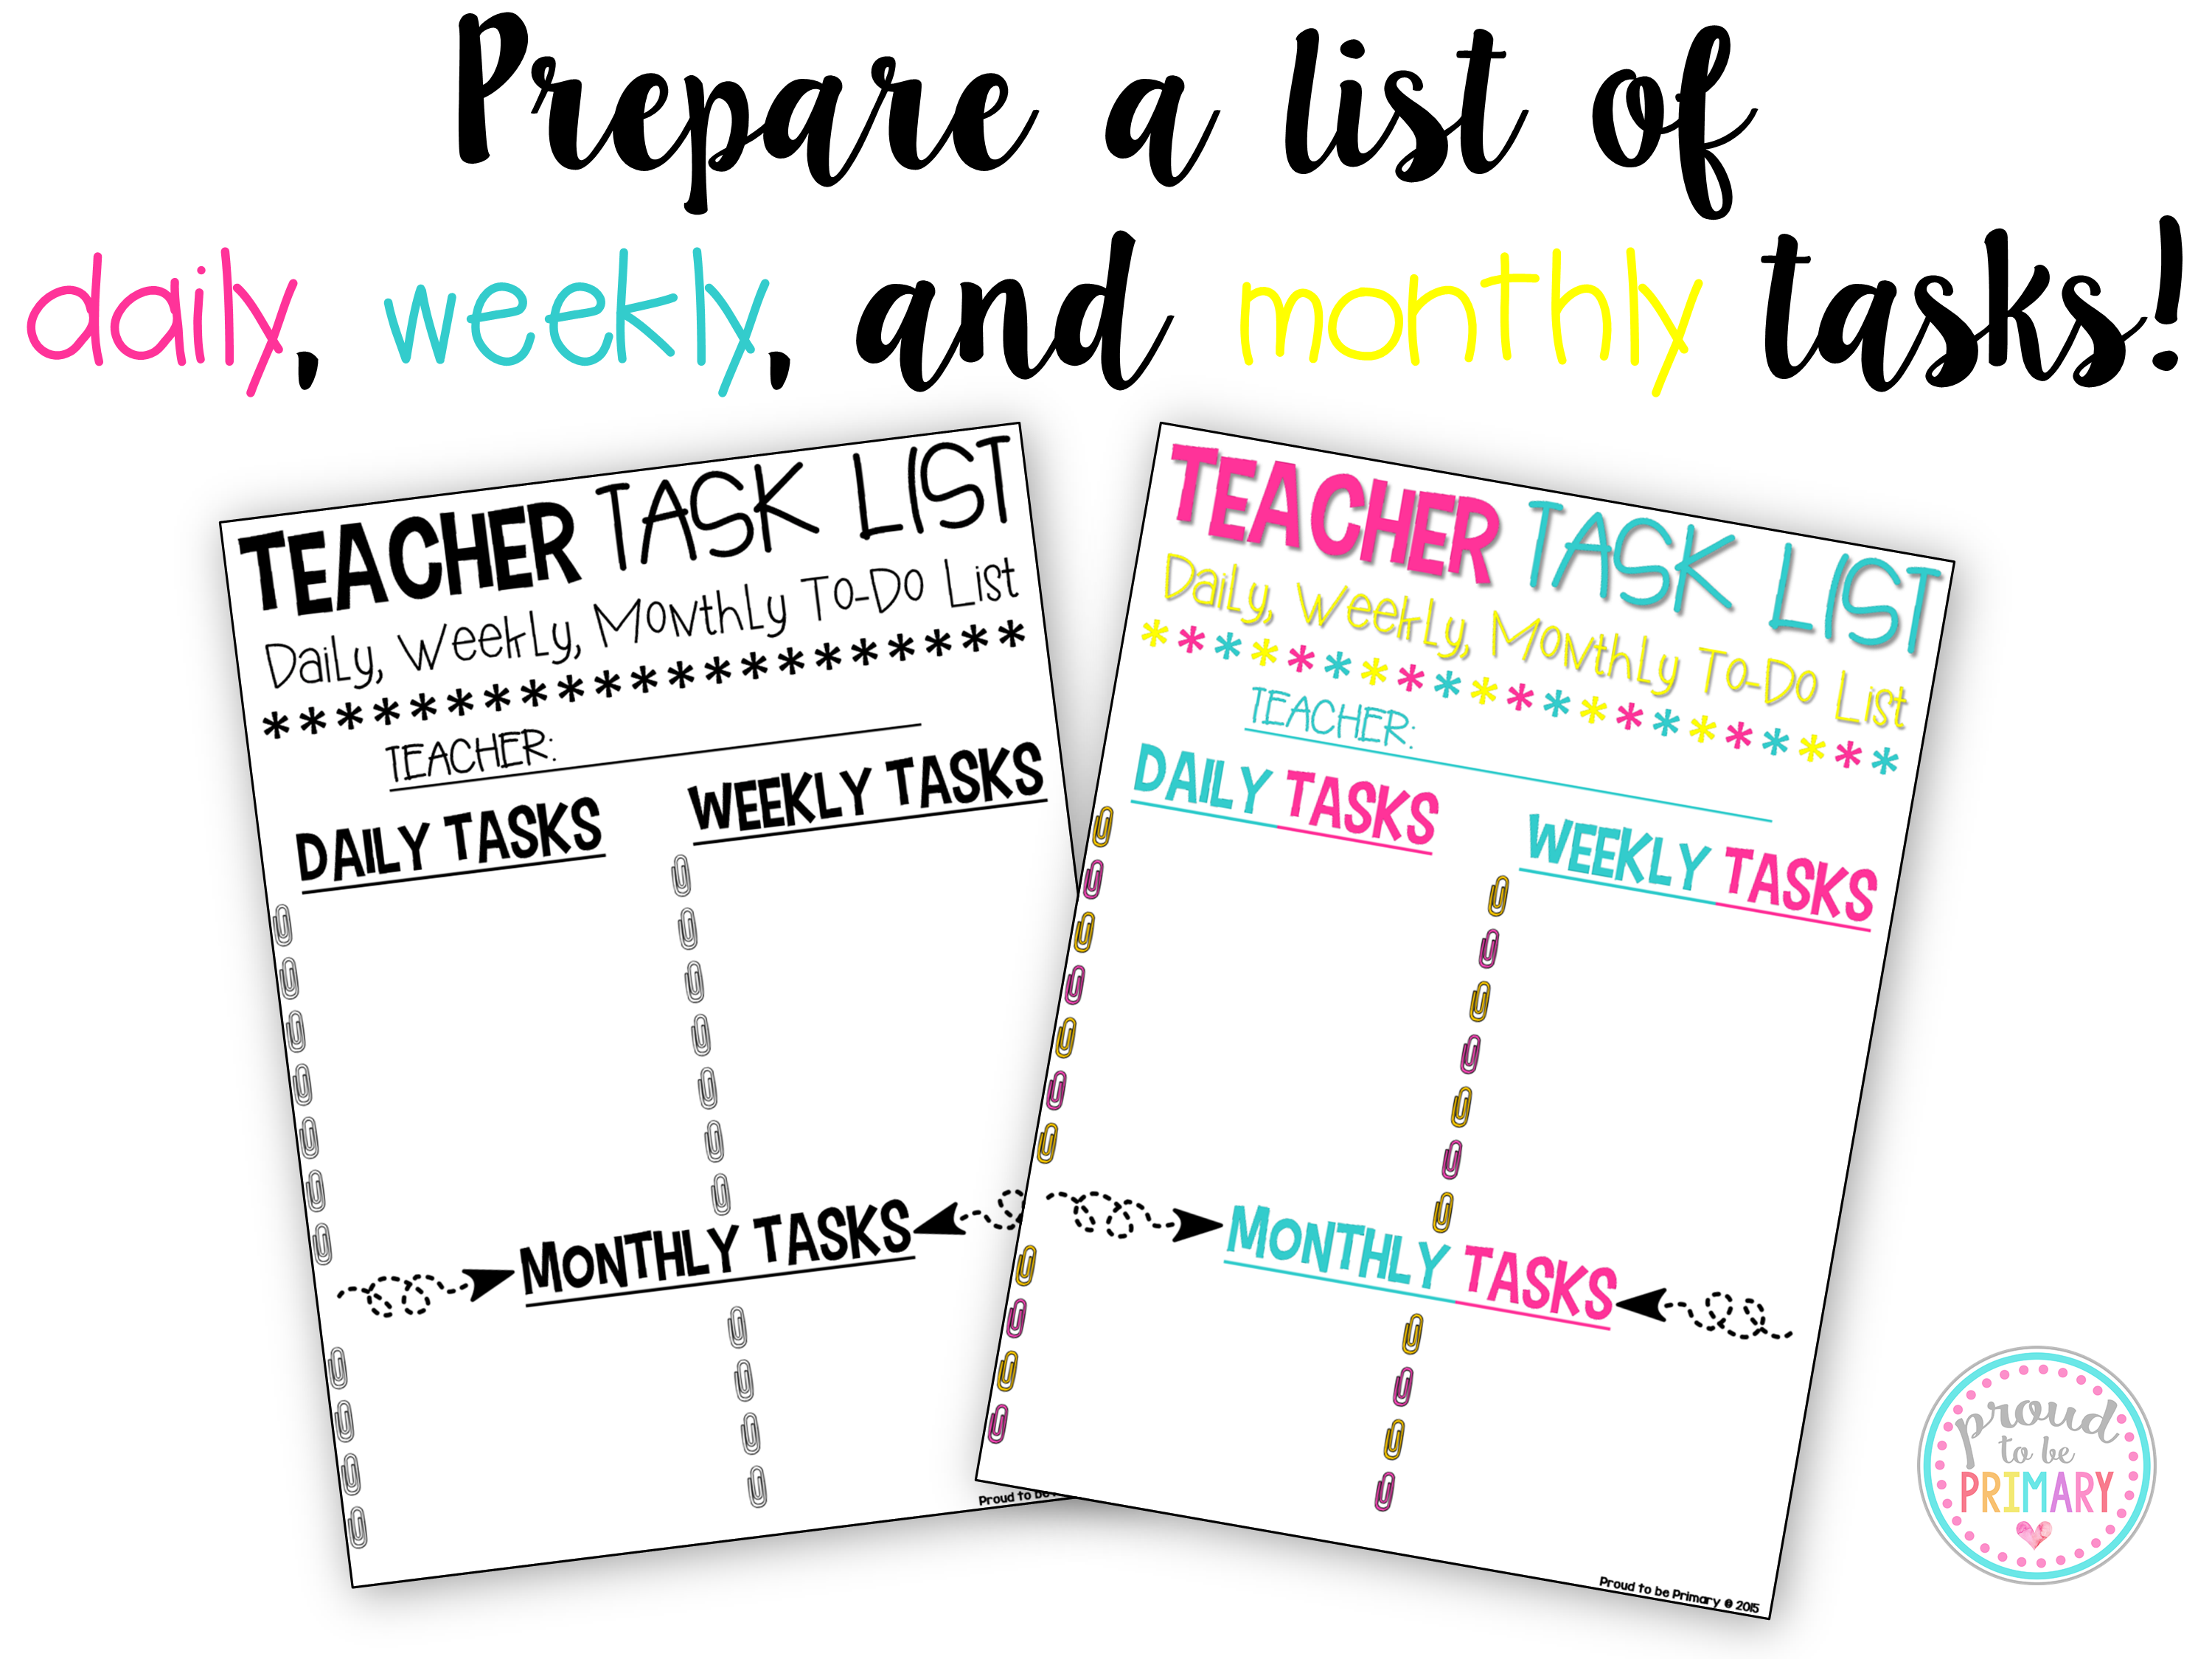 time management for teachers - teacher task list